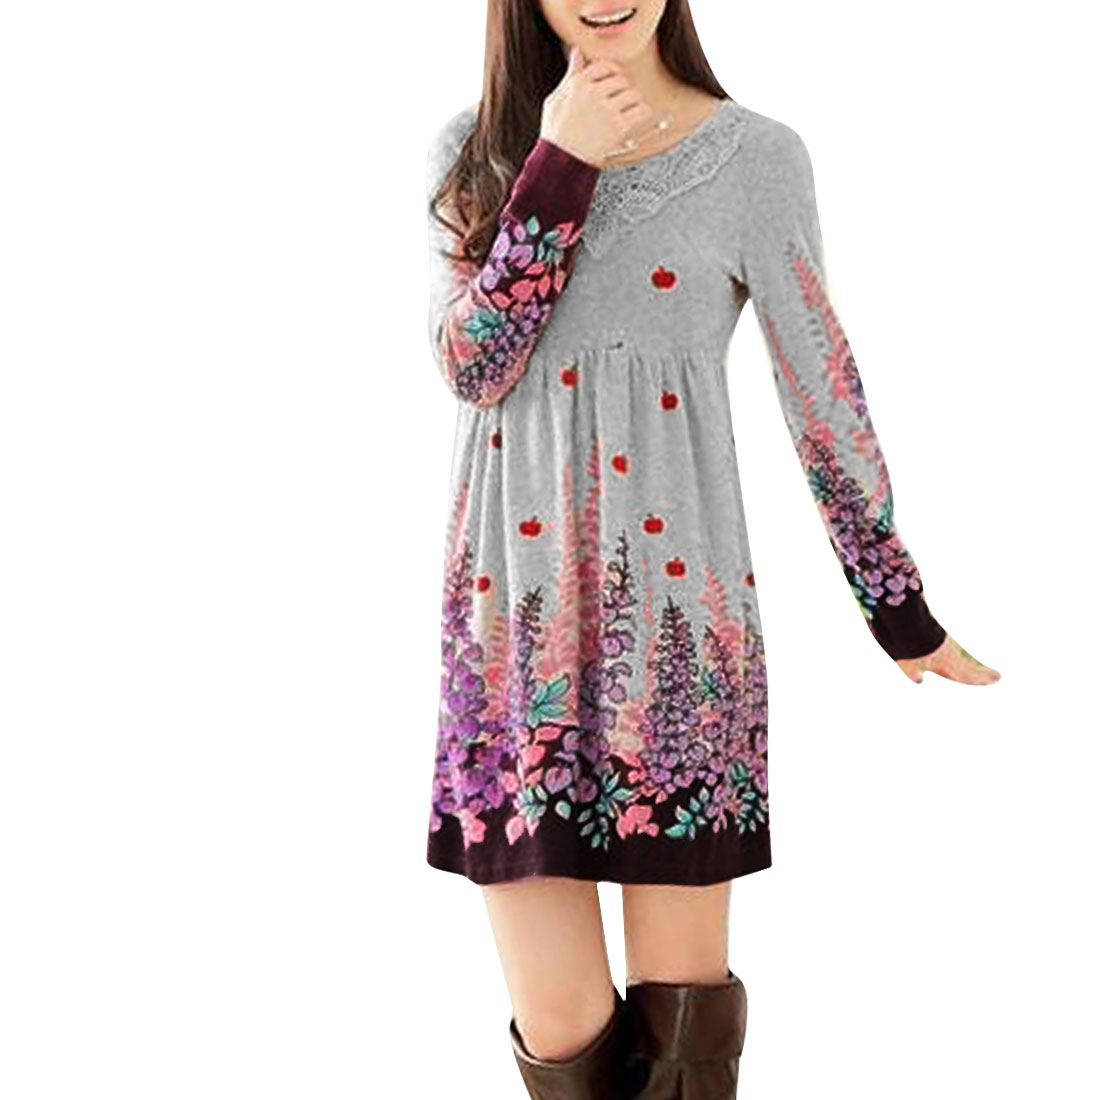 Ladies Chic Floral Pattern Purple Light Gray Spring Knitted Mini Dress XS